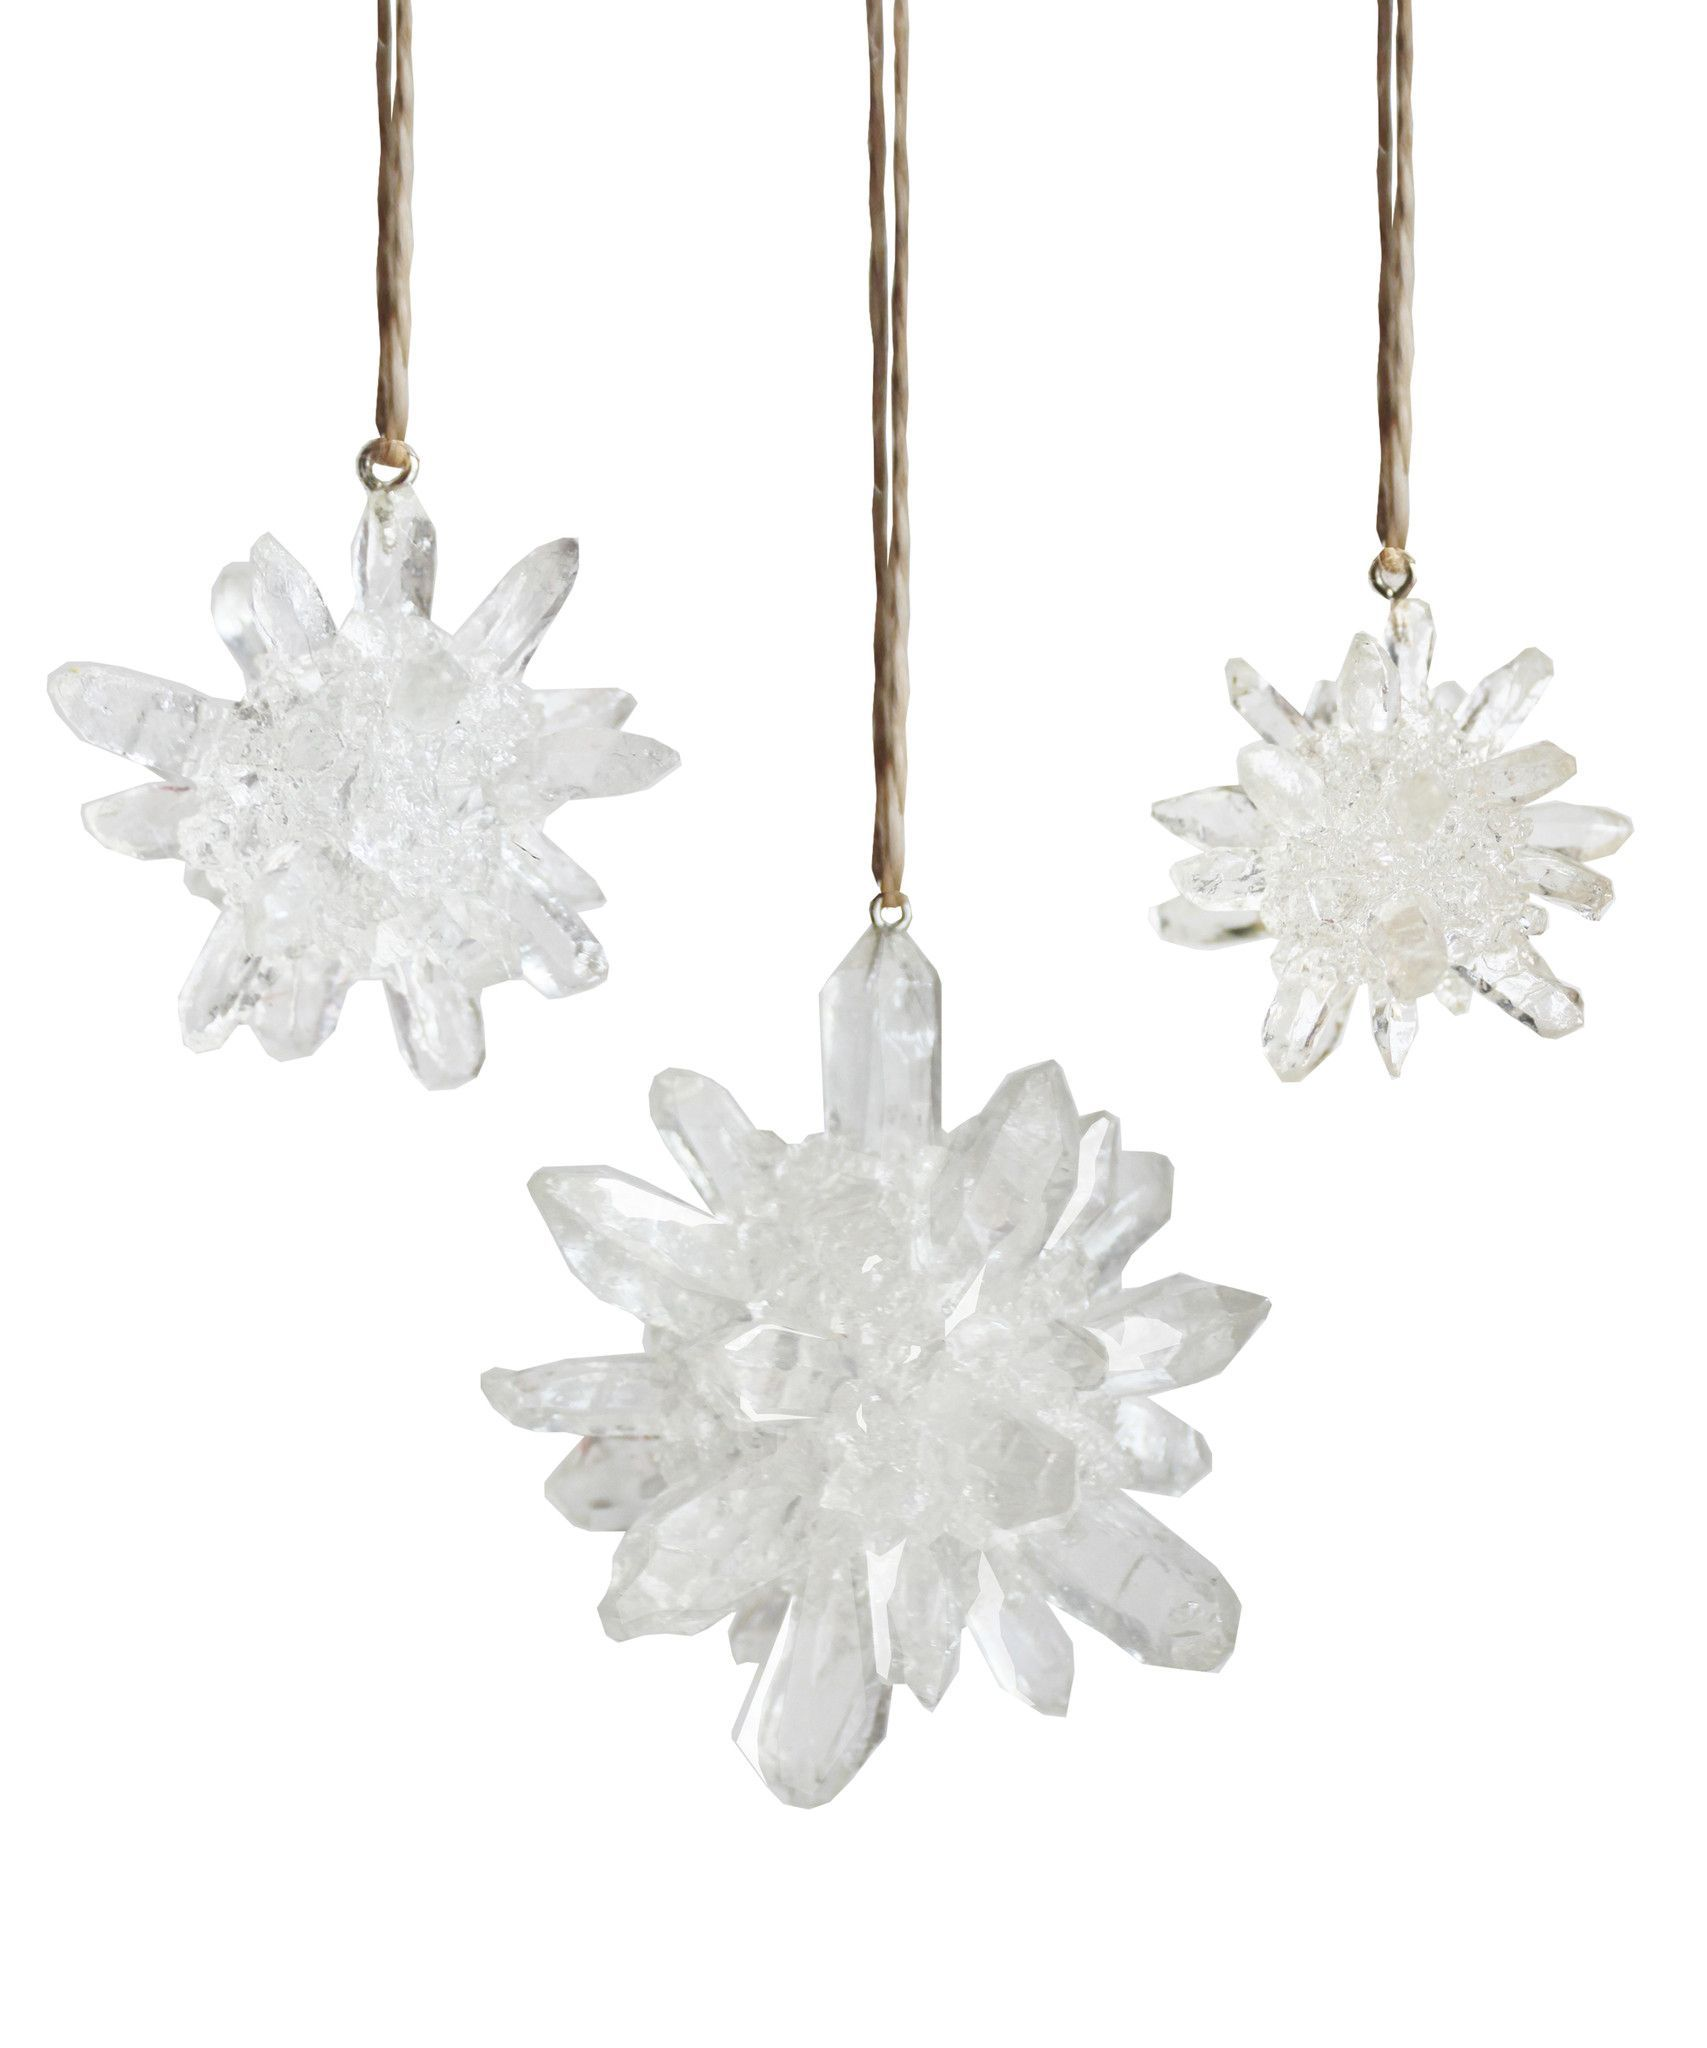 Faux Quartz Starburst Ornament